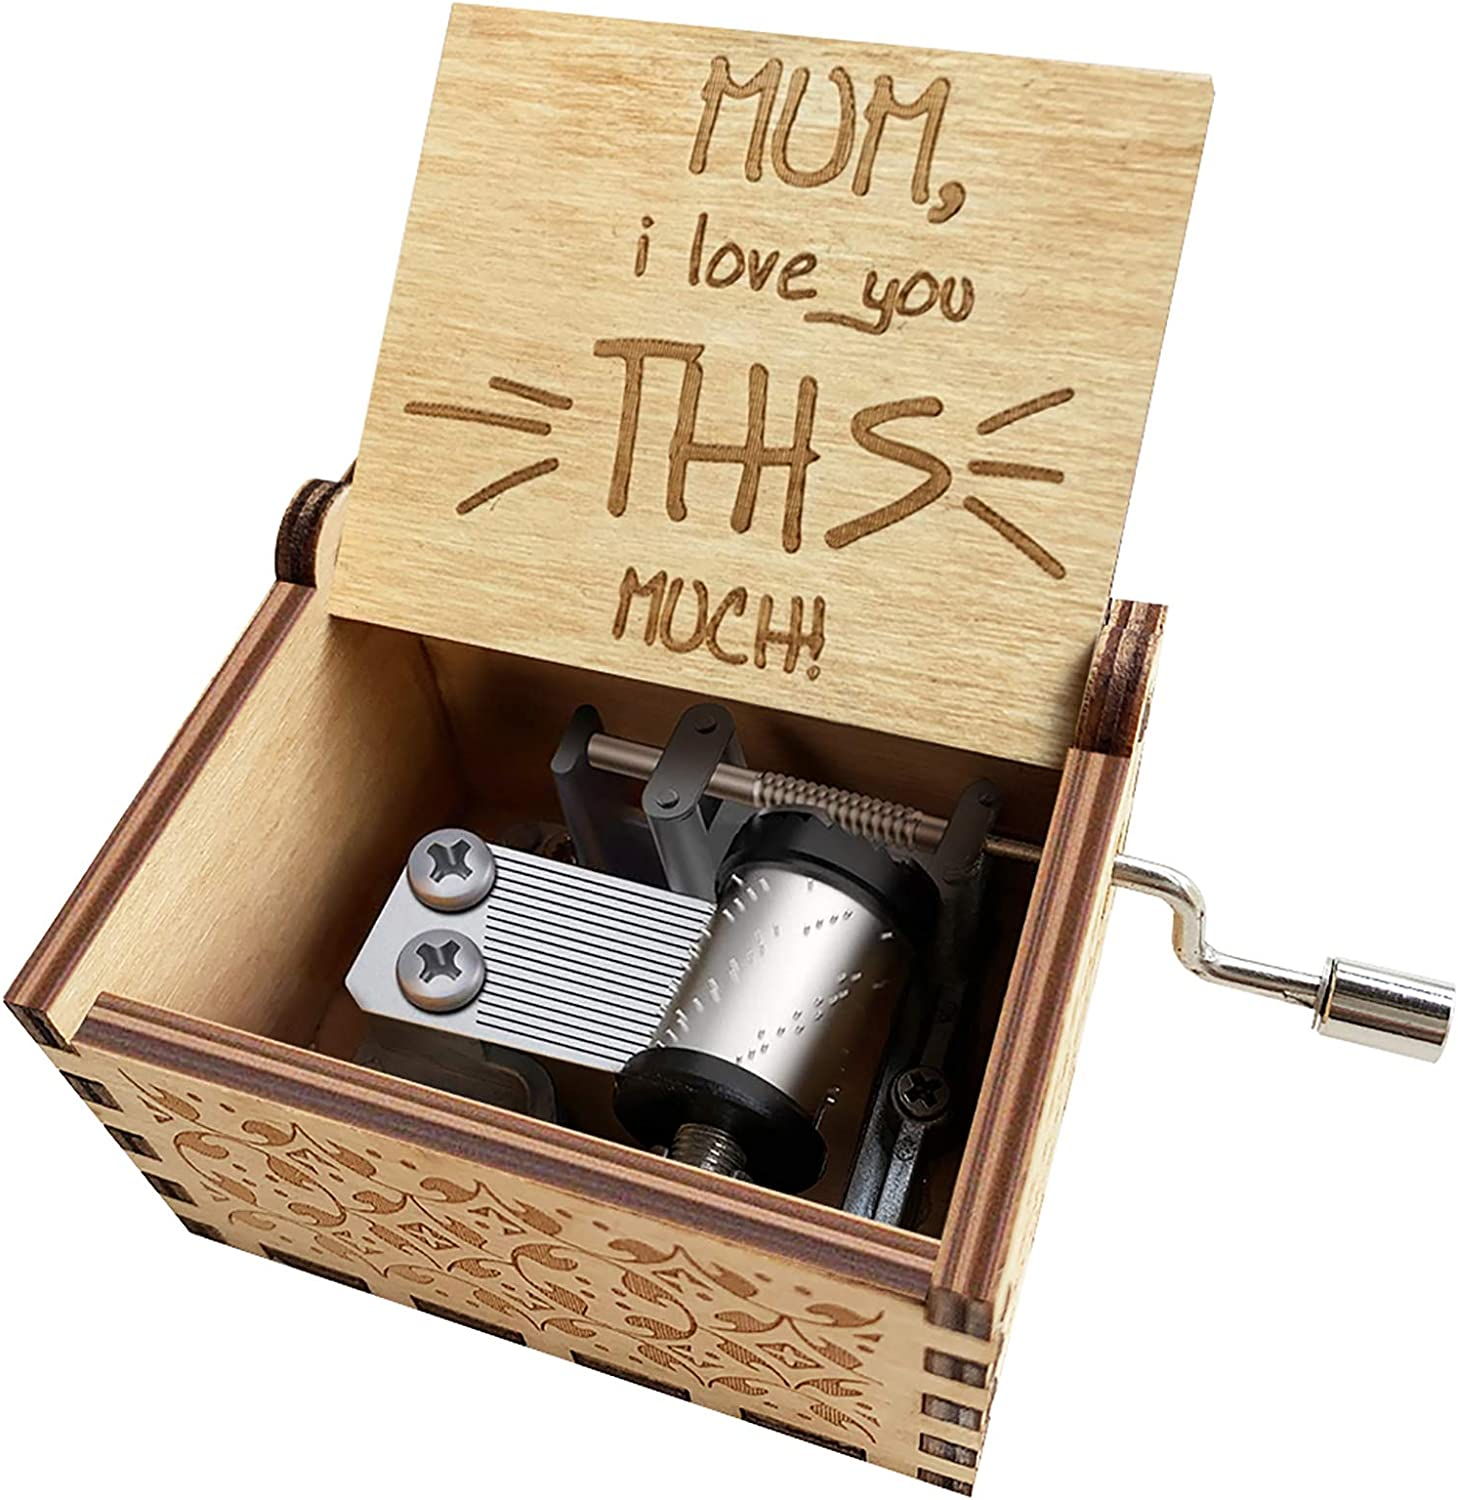 ORIMAMI to Mom Mommy Music Boxes- Mum I Love You This Much Gift from Son Daughter Wooden Music Box Home Office Decorative - Best Mom Gifts for Mother's Day,Thanksgiving Day,Christmas